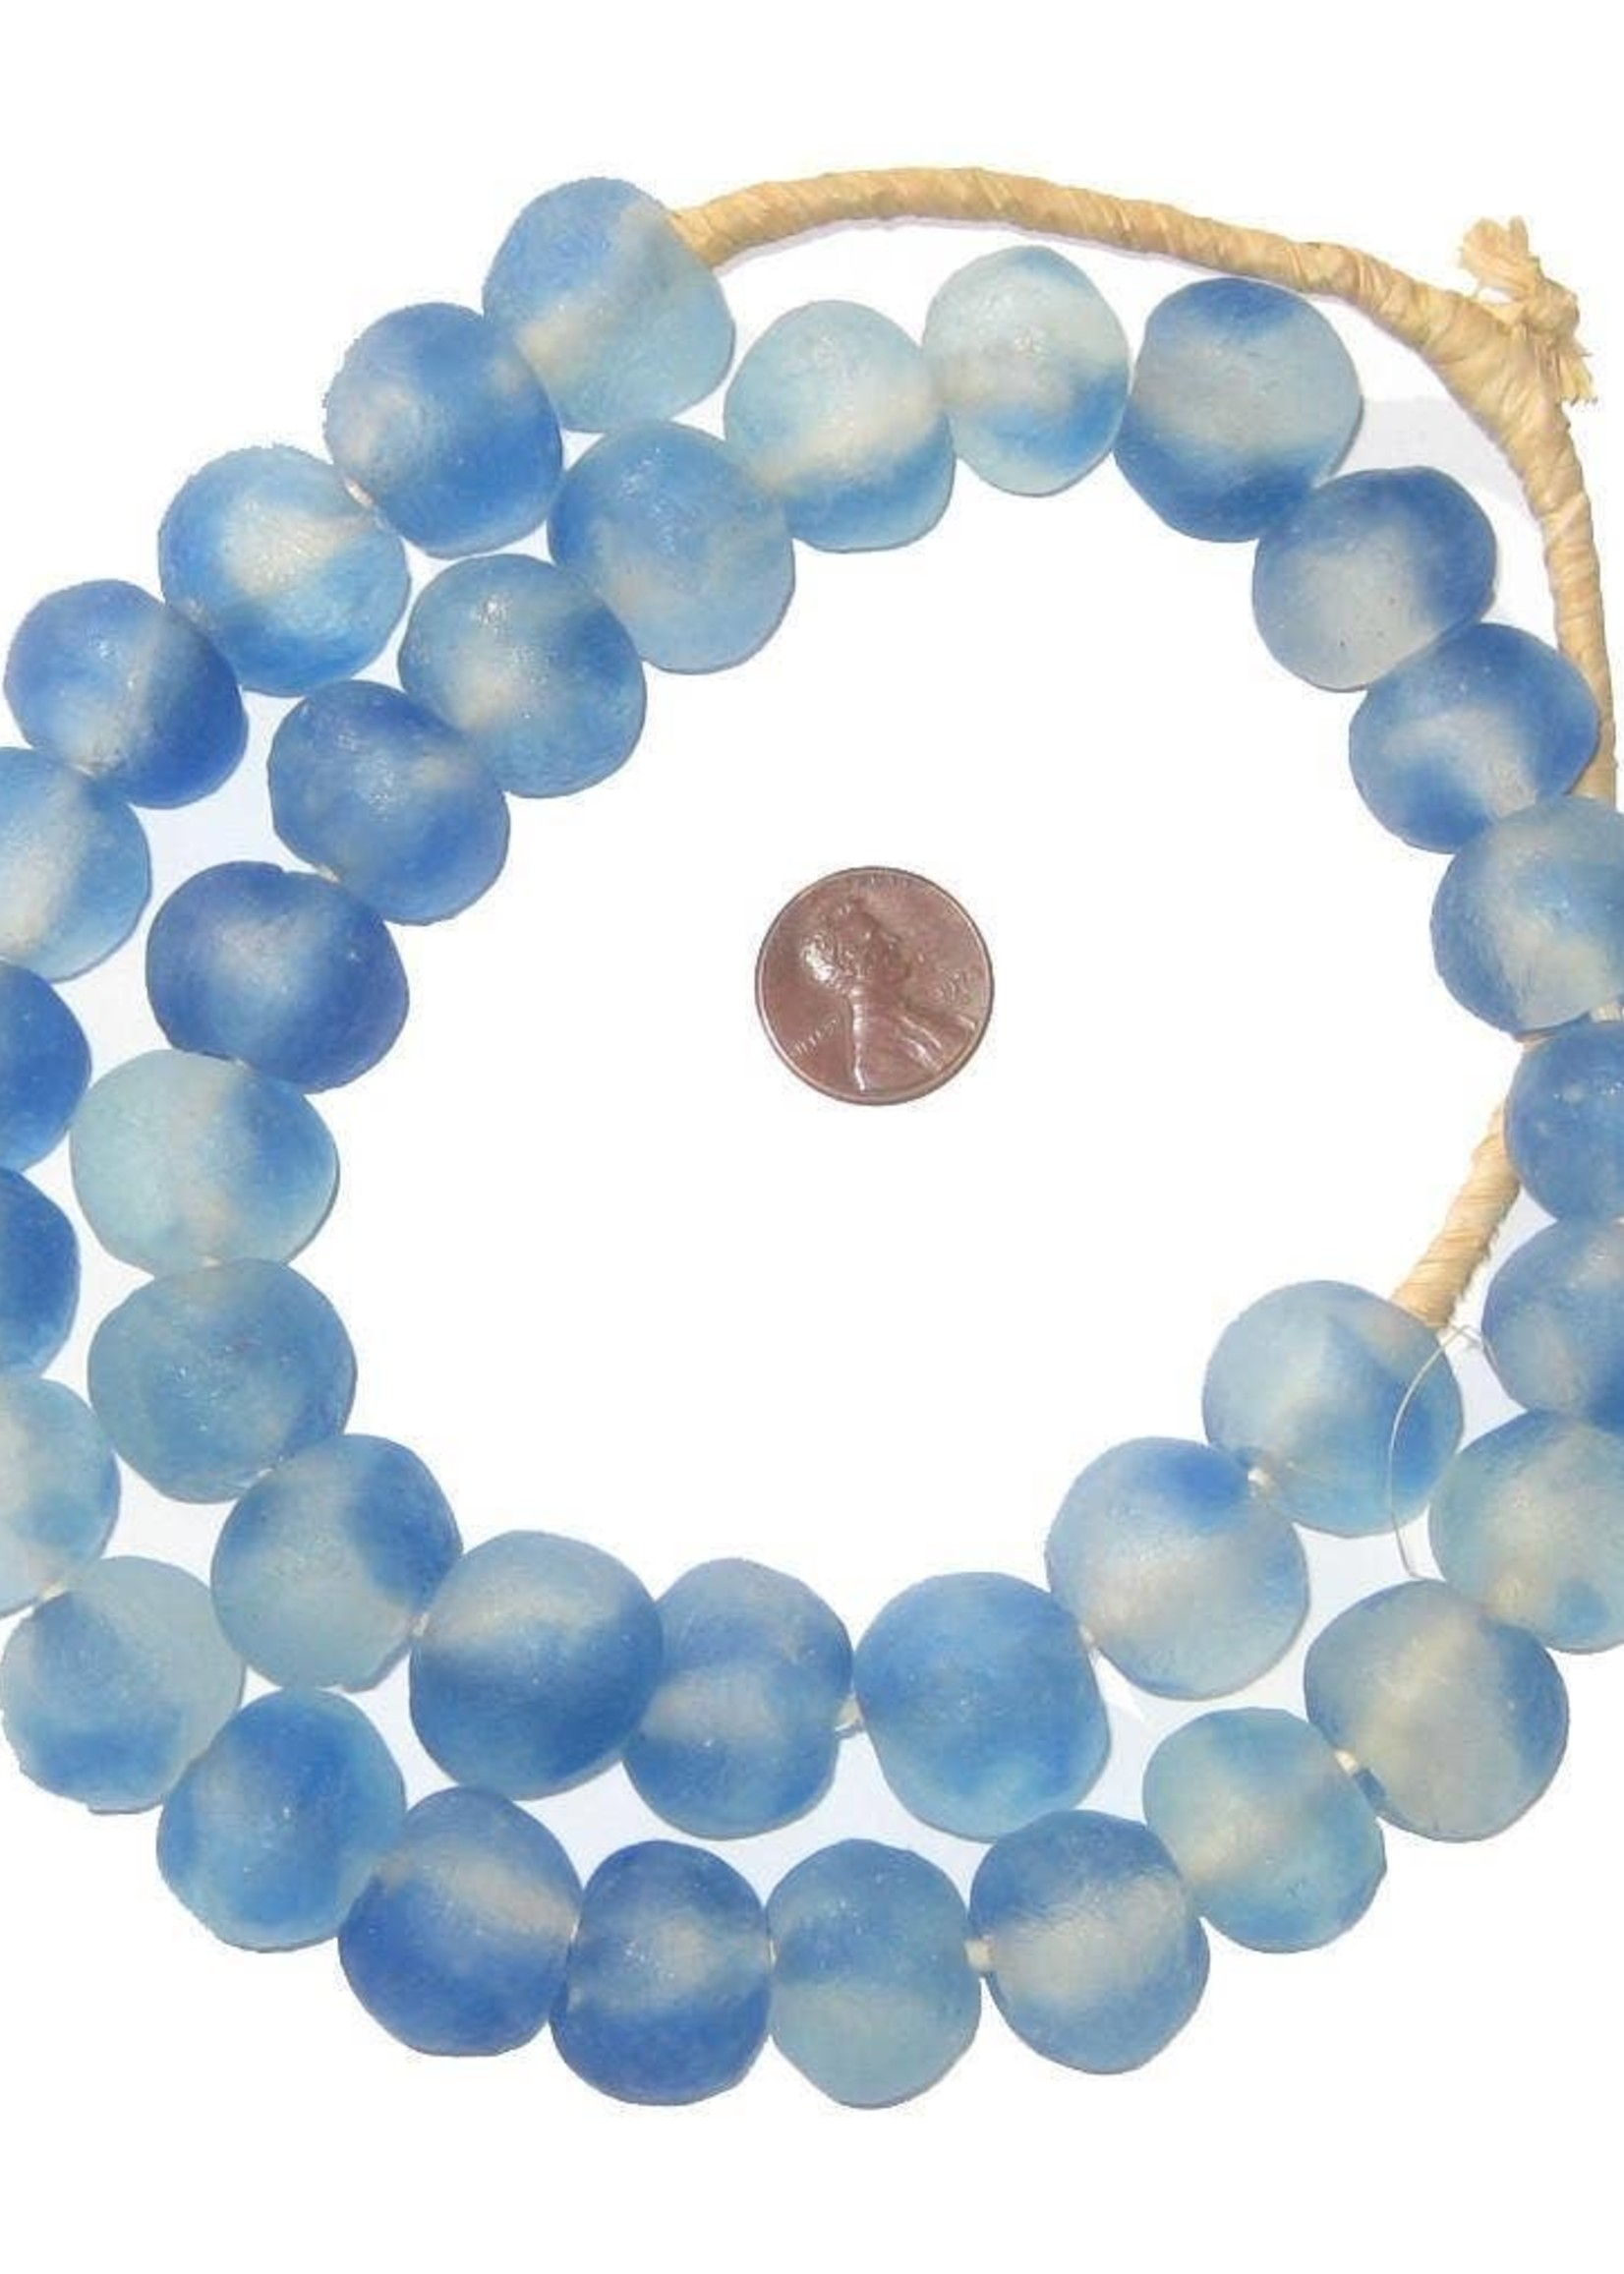 18mm Blue Swirl Recycled Glass Beads